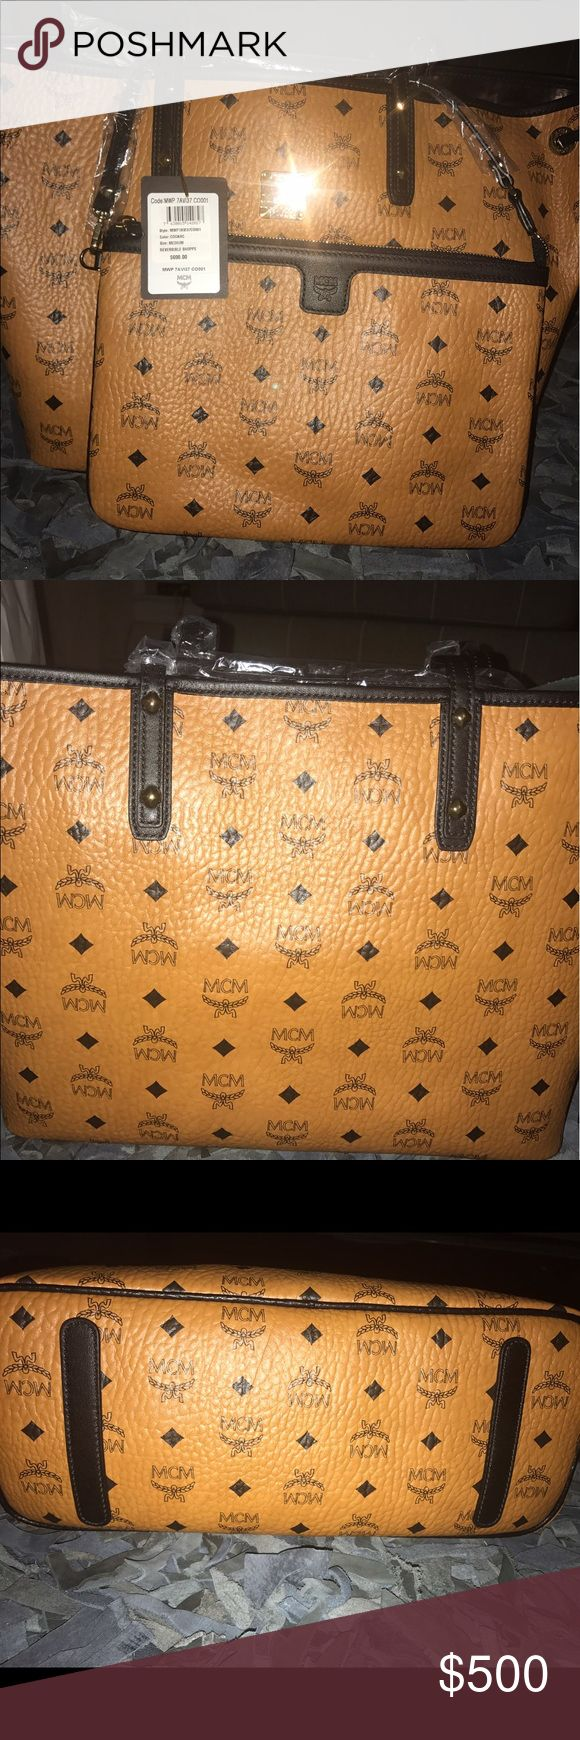 Brand New MCM Cognac Medium Reversible Shopper Brand New unused Authentic MCM Cognac Medium Reversible Shopper with dust bag and original tags MCM Bags Shoulder Bags